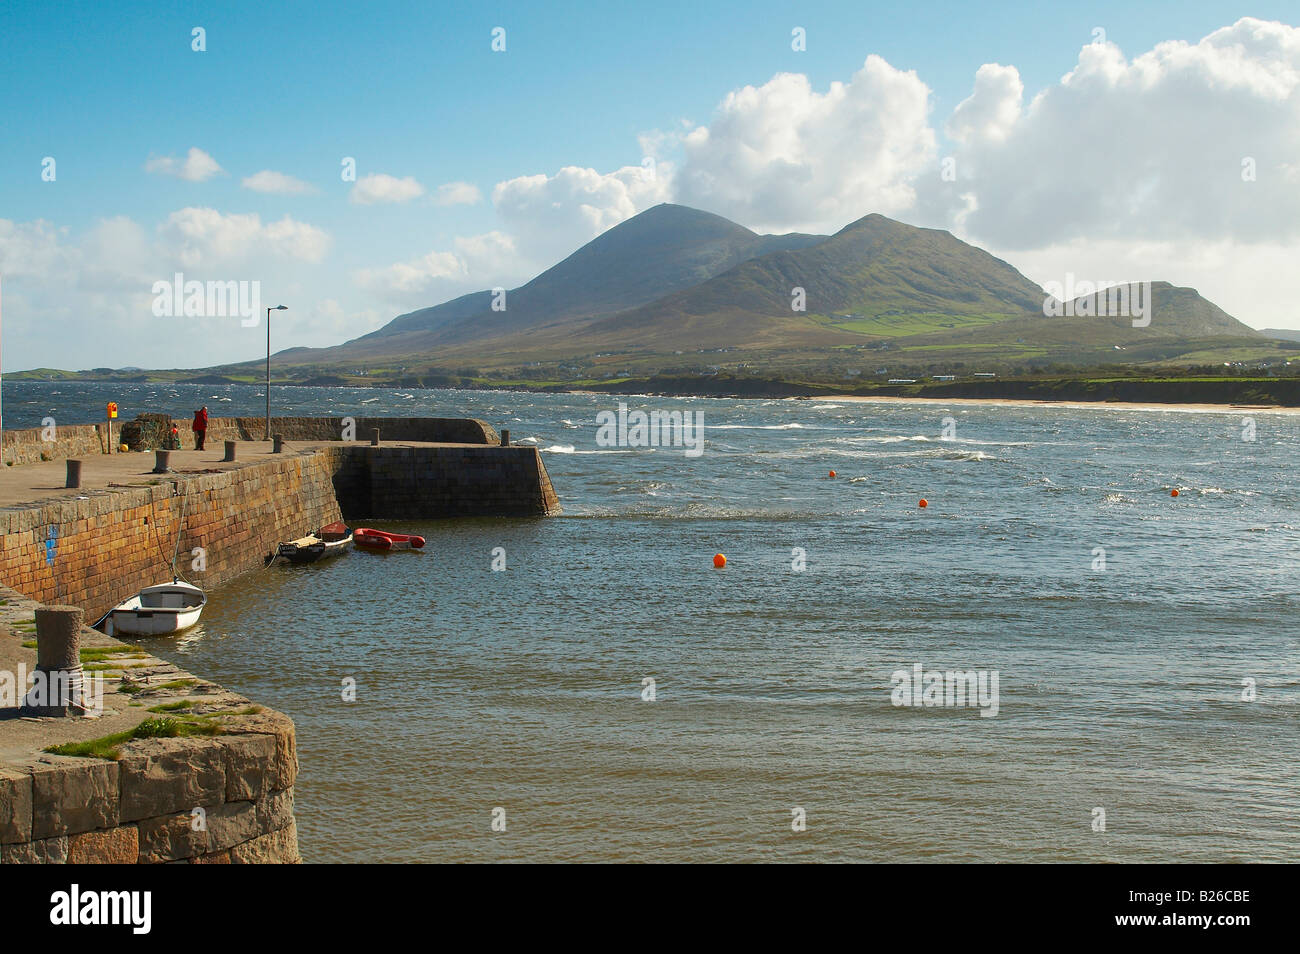 outdoor photo, view from Old Head (near Louisburgh) to Croagh Patrick, County Mayo, Ireland, Europe - Stock Image